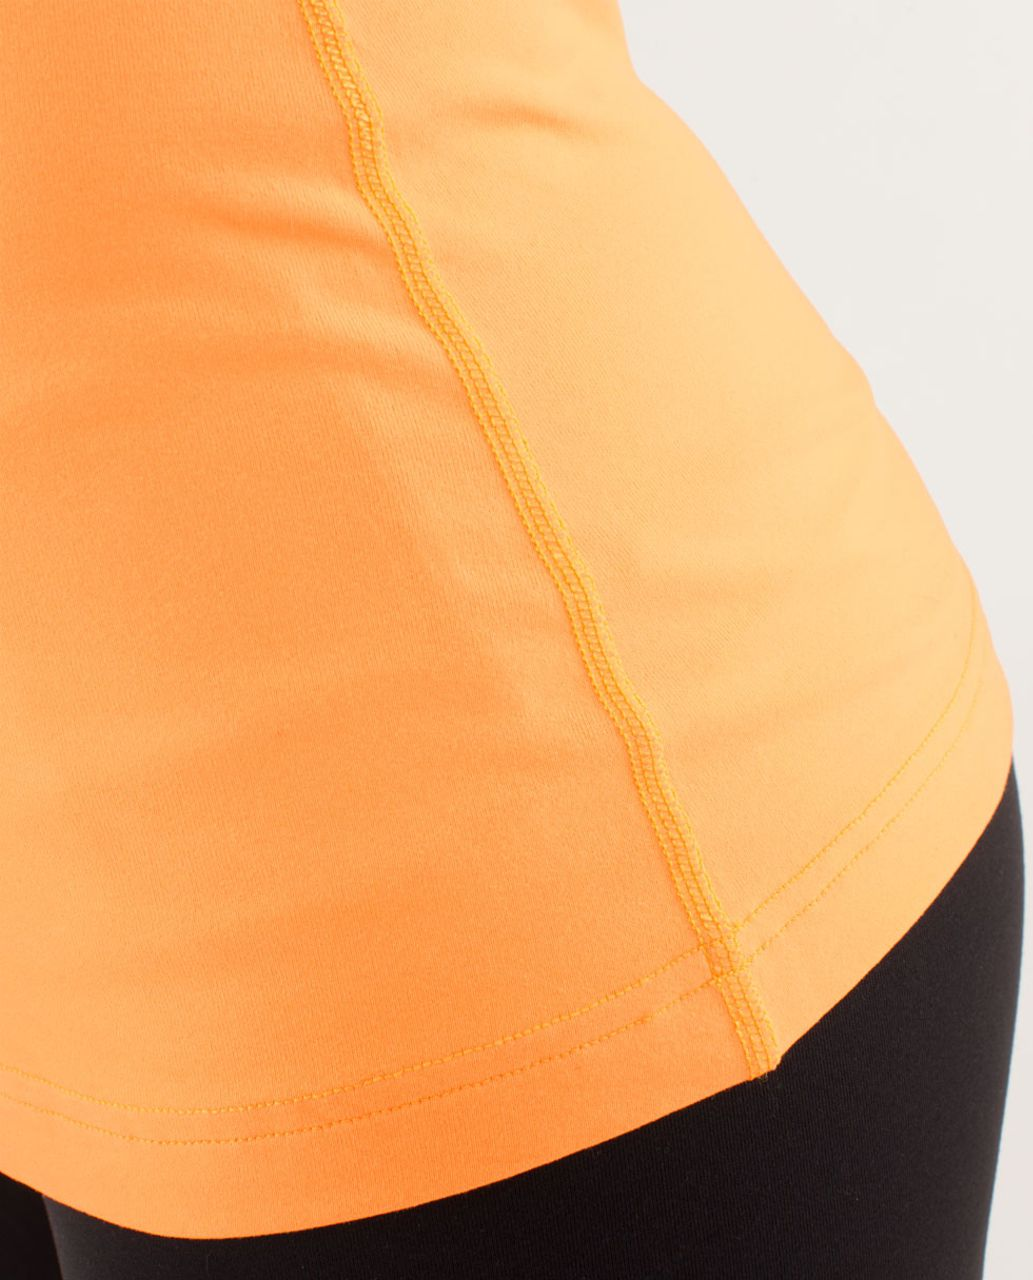 Lululemon Cool Racerback (First Release) - Creamsicle Pop